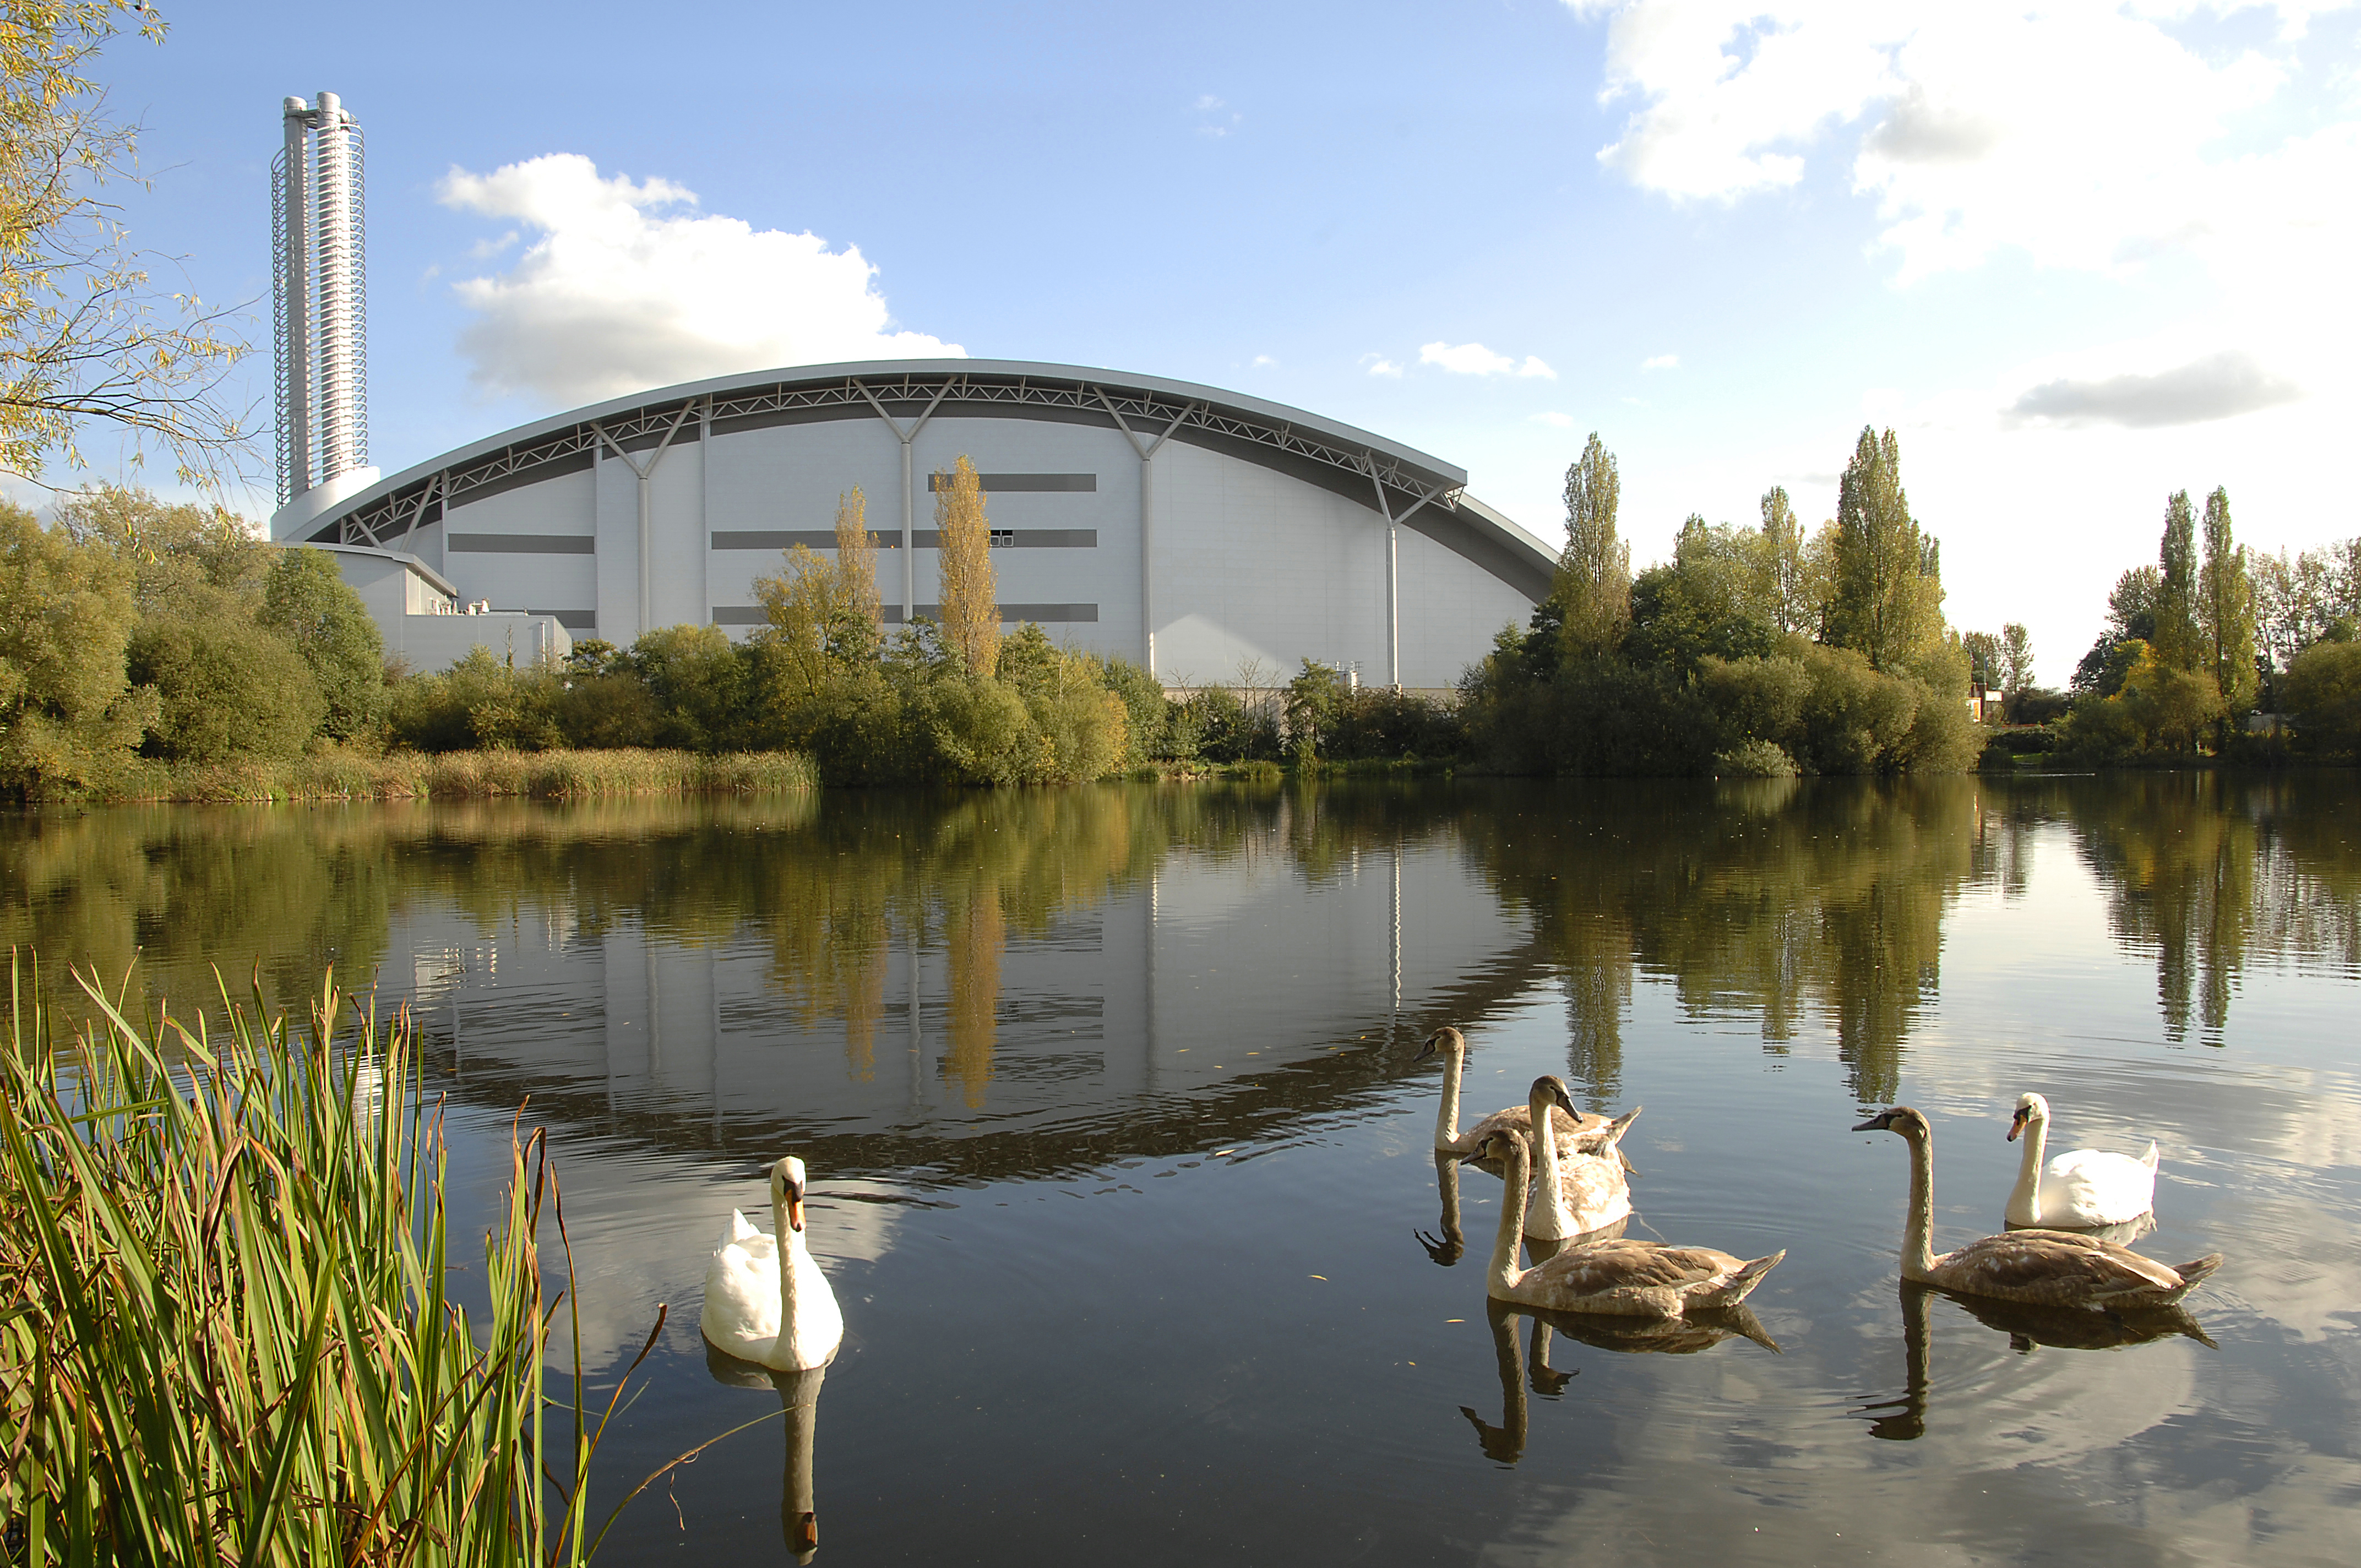 The Lakeside Energy from Waste facility in Colnbrook, Berkshire